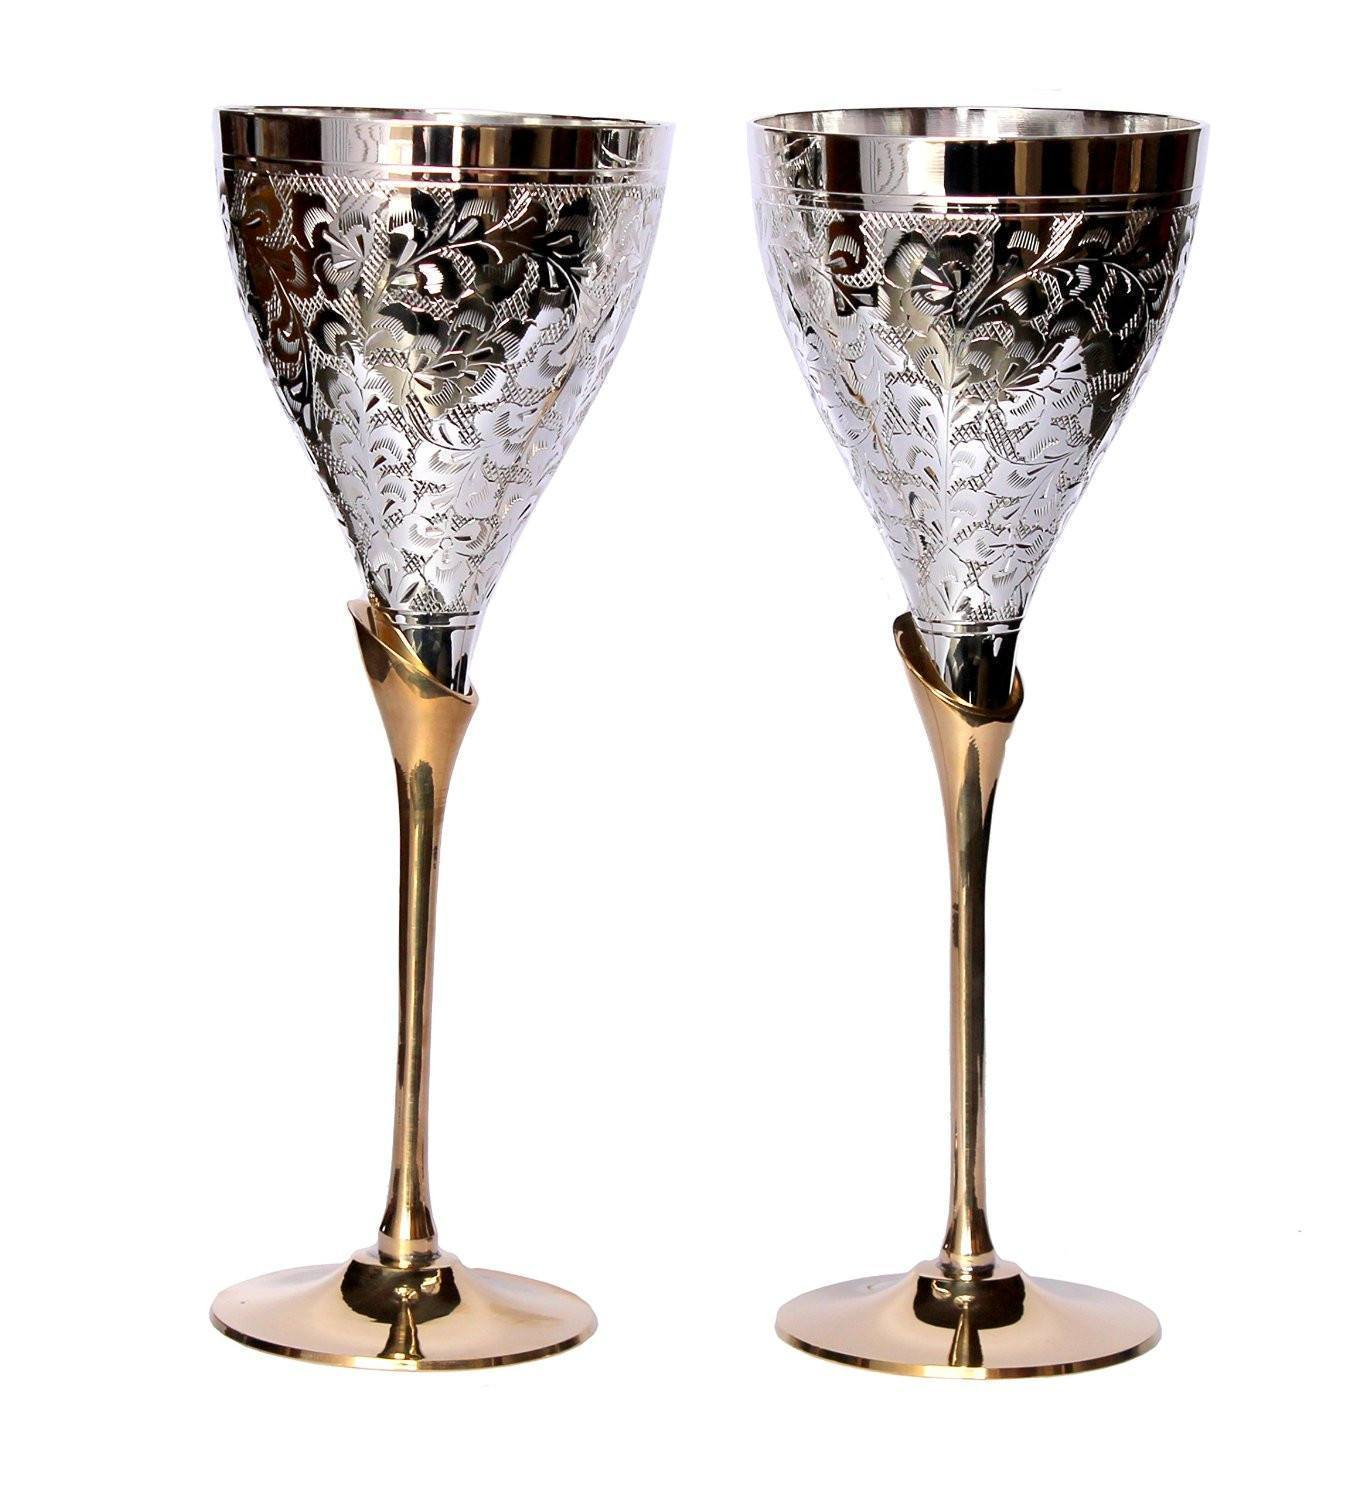 Silver Plated - IN INDEA Silver Plated Engraved Pure Brass Premium Goblet Champagne Flutes Coupes Wine Glass Set Of 2